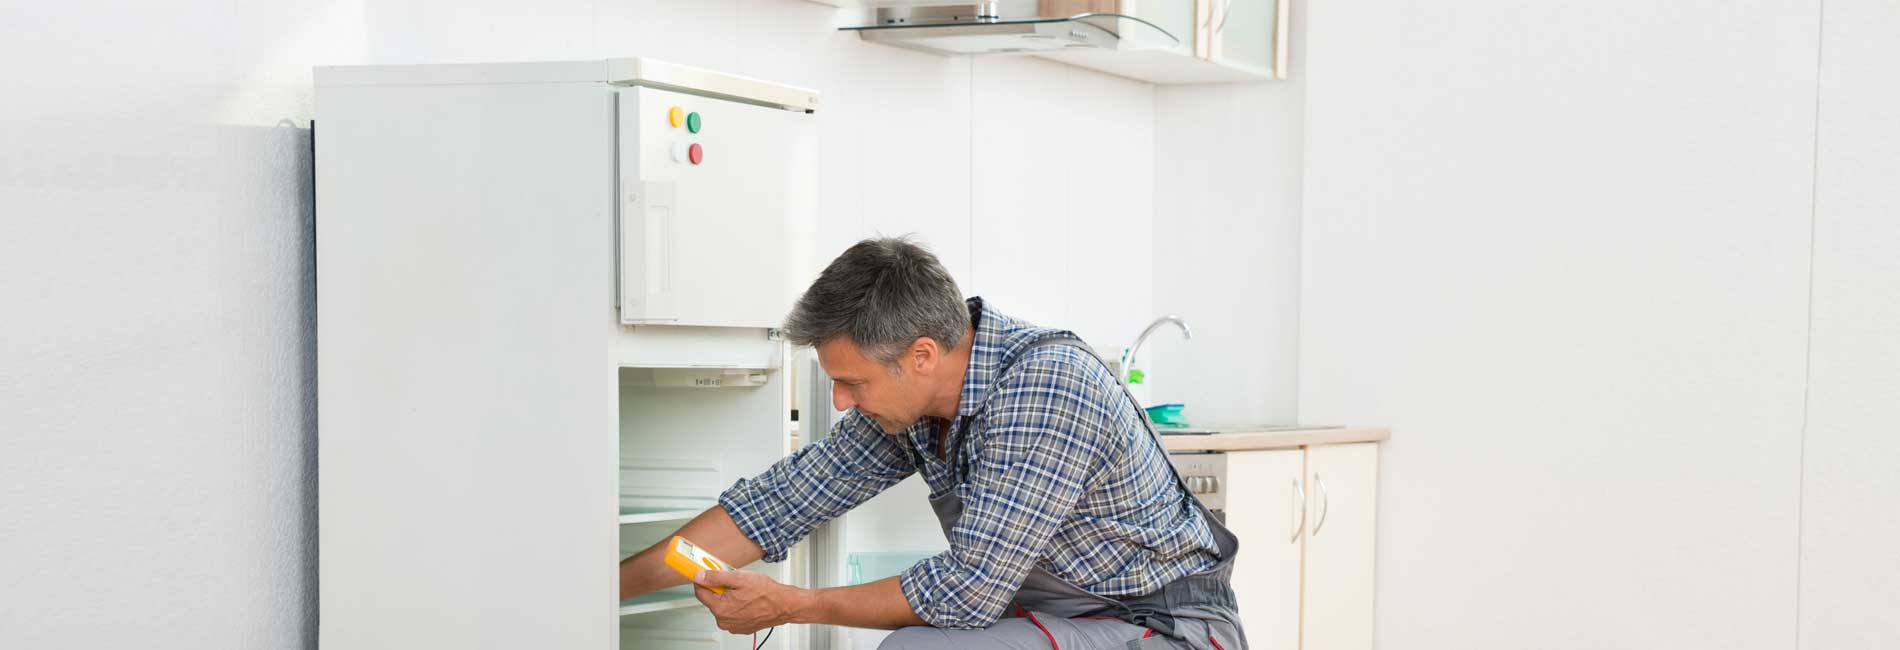 Whirlpool Fridge Repair in Vengaivasal